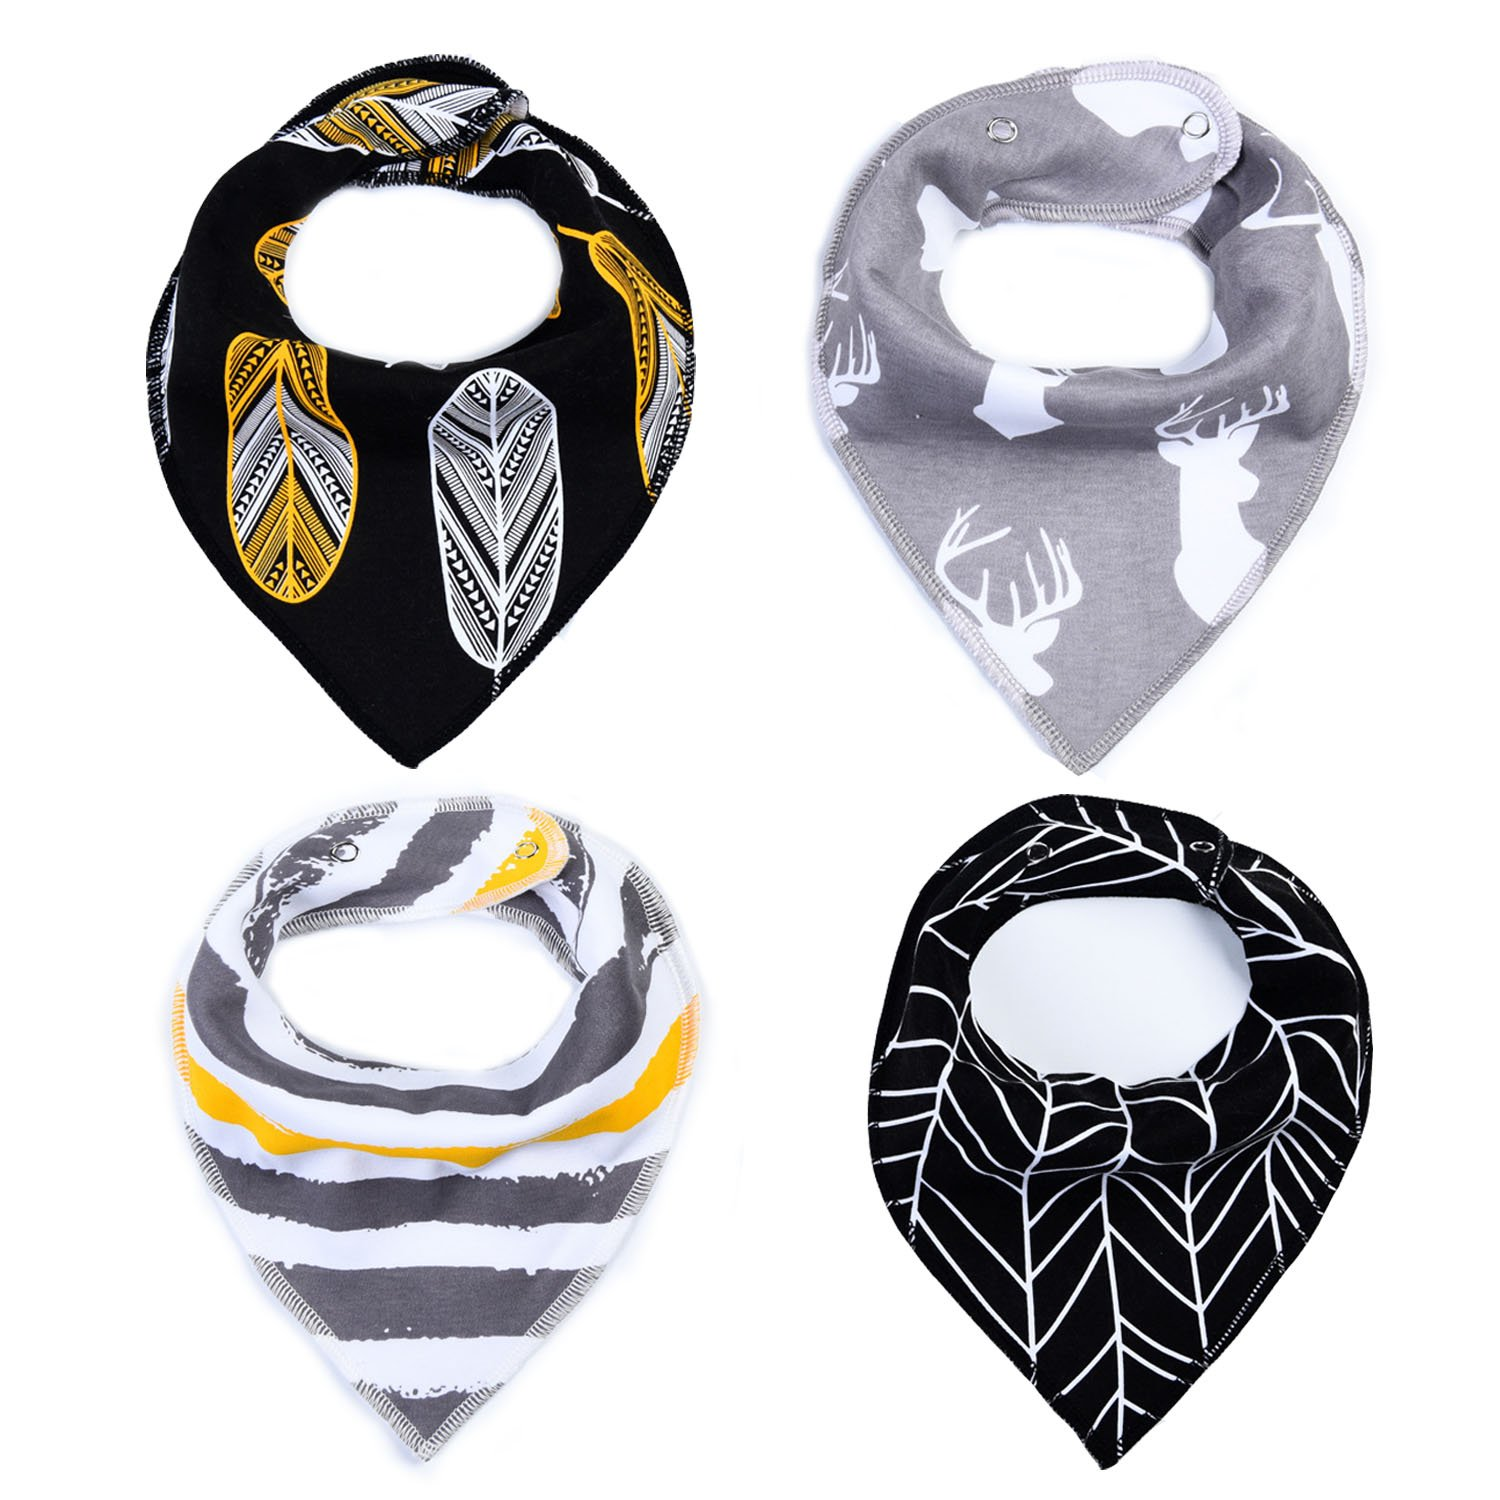 Topcoco 4 Pack Baby Boys Girls Bandana Drool Bibs Set for Drooling and Teething TP18011801-1